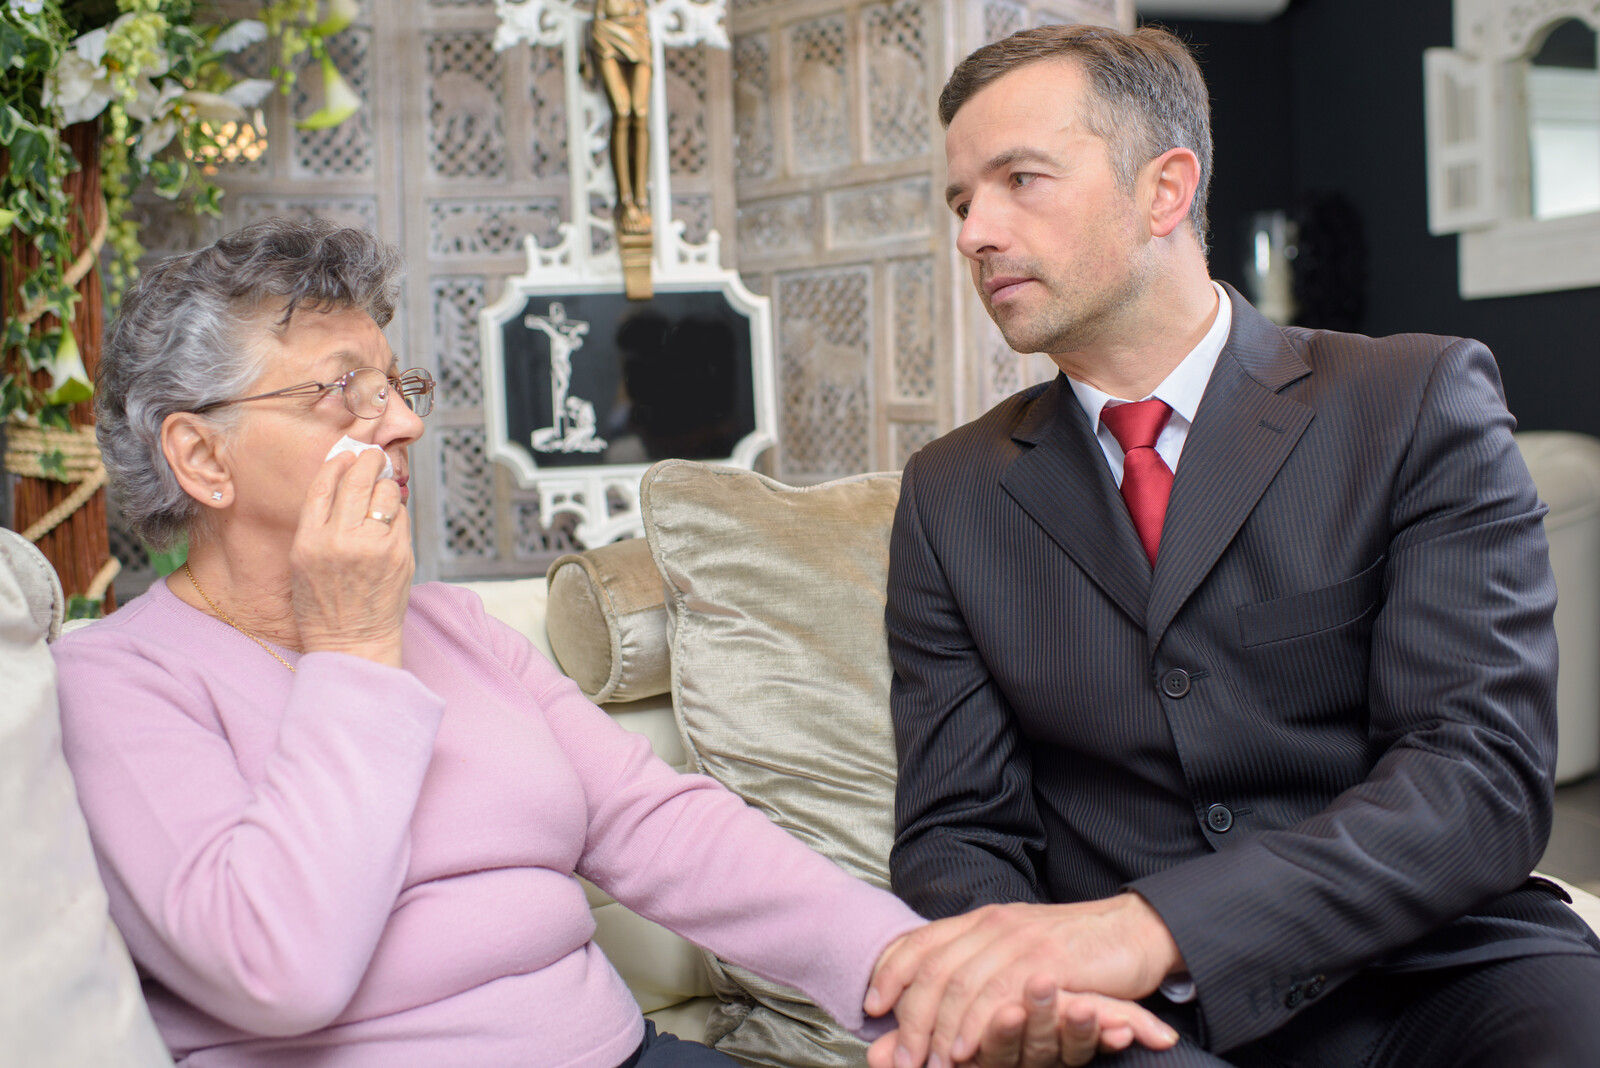 Funeral director sitting on a couch at funeral home with senior woman who is crying, holding her hand